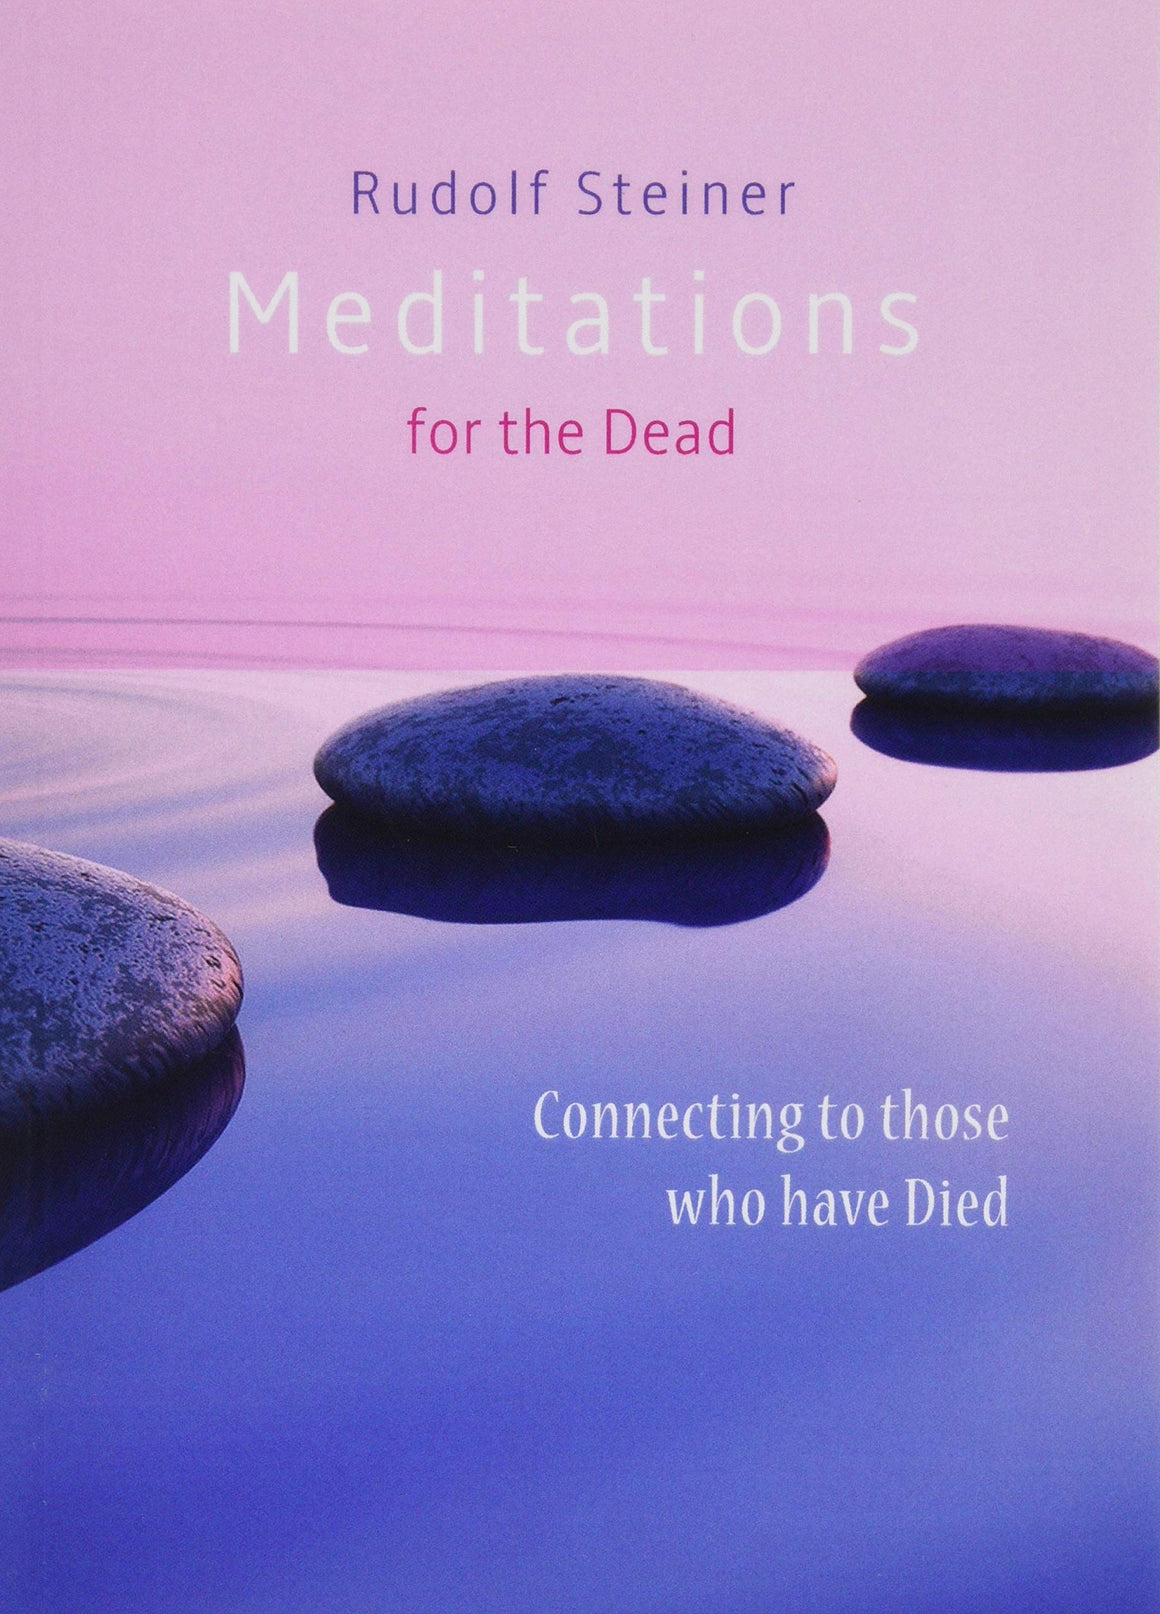 Meditations for the Dead by Rudolf Steiner